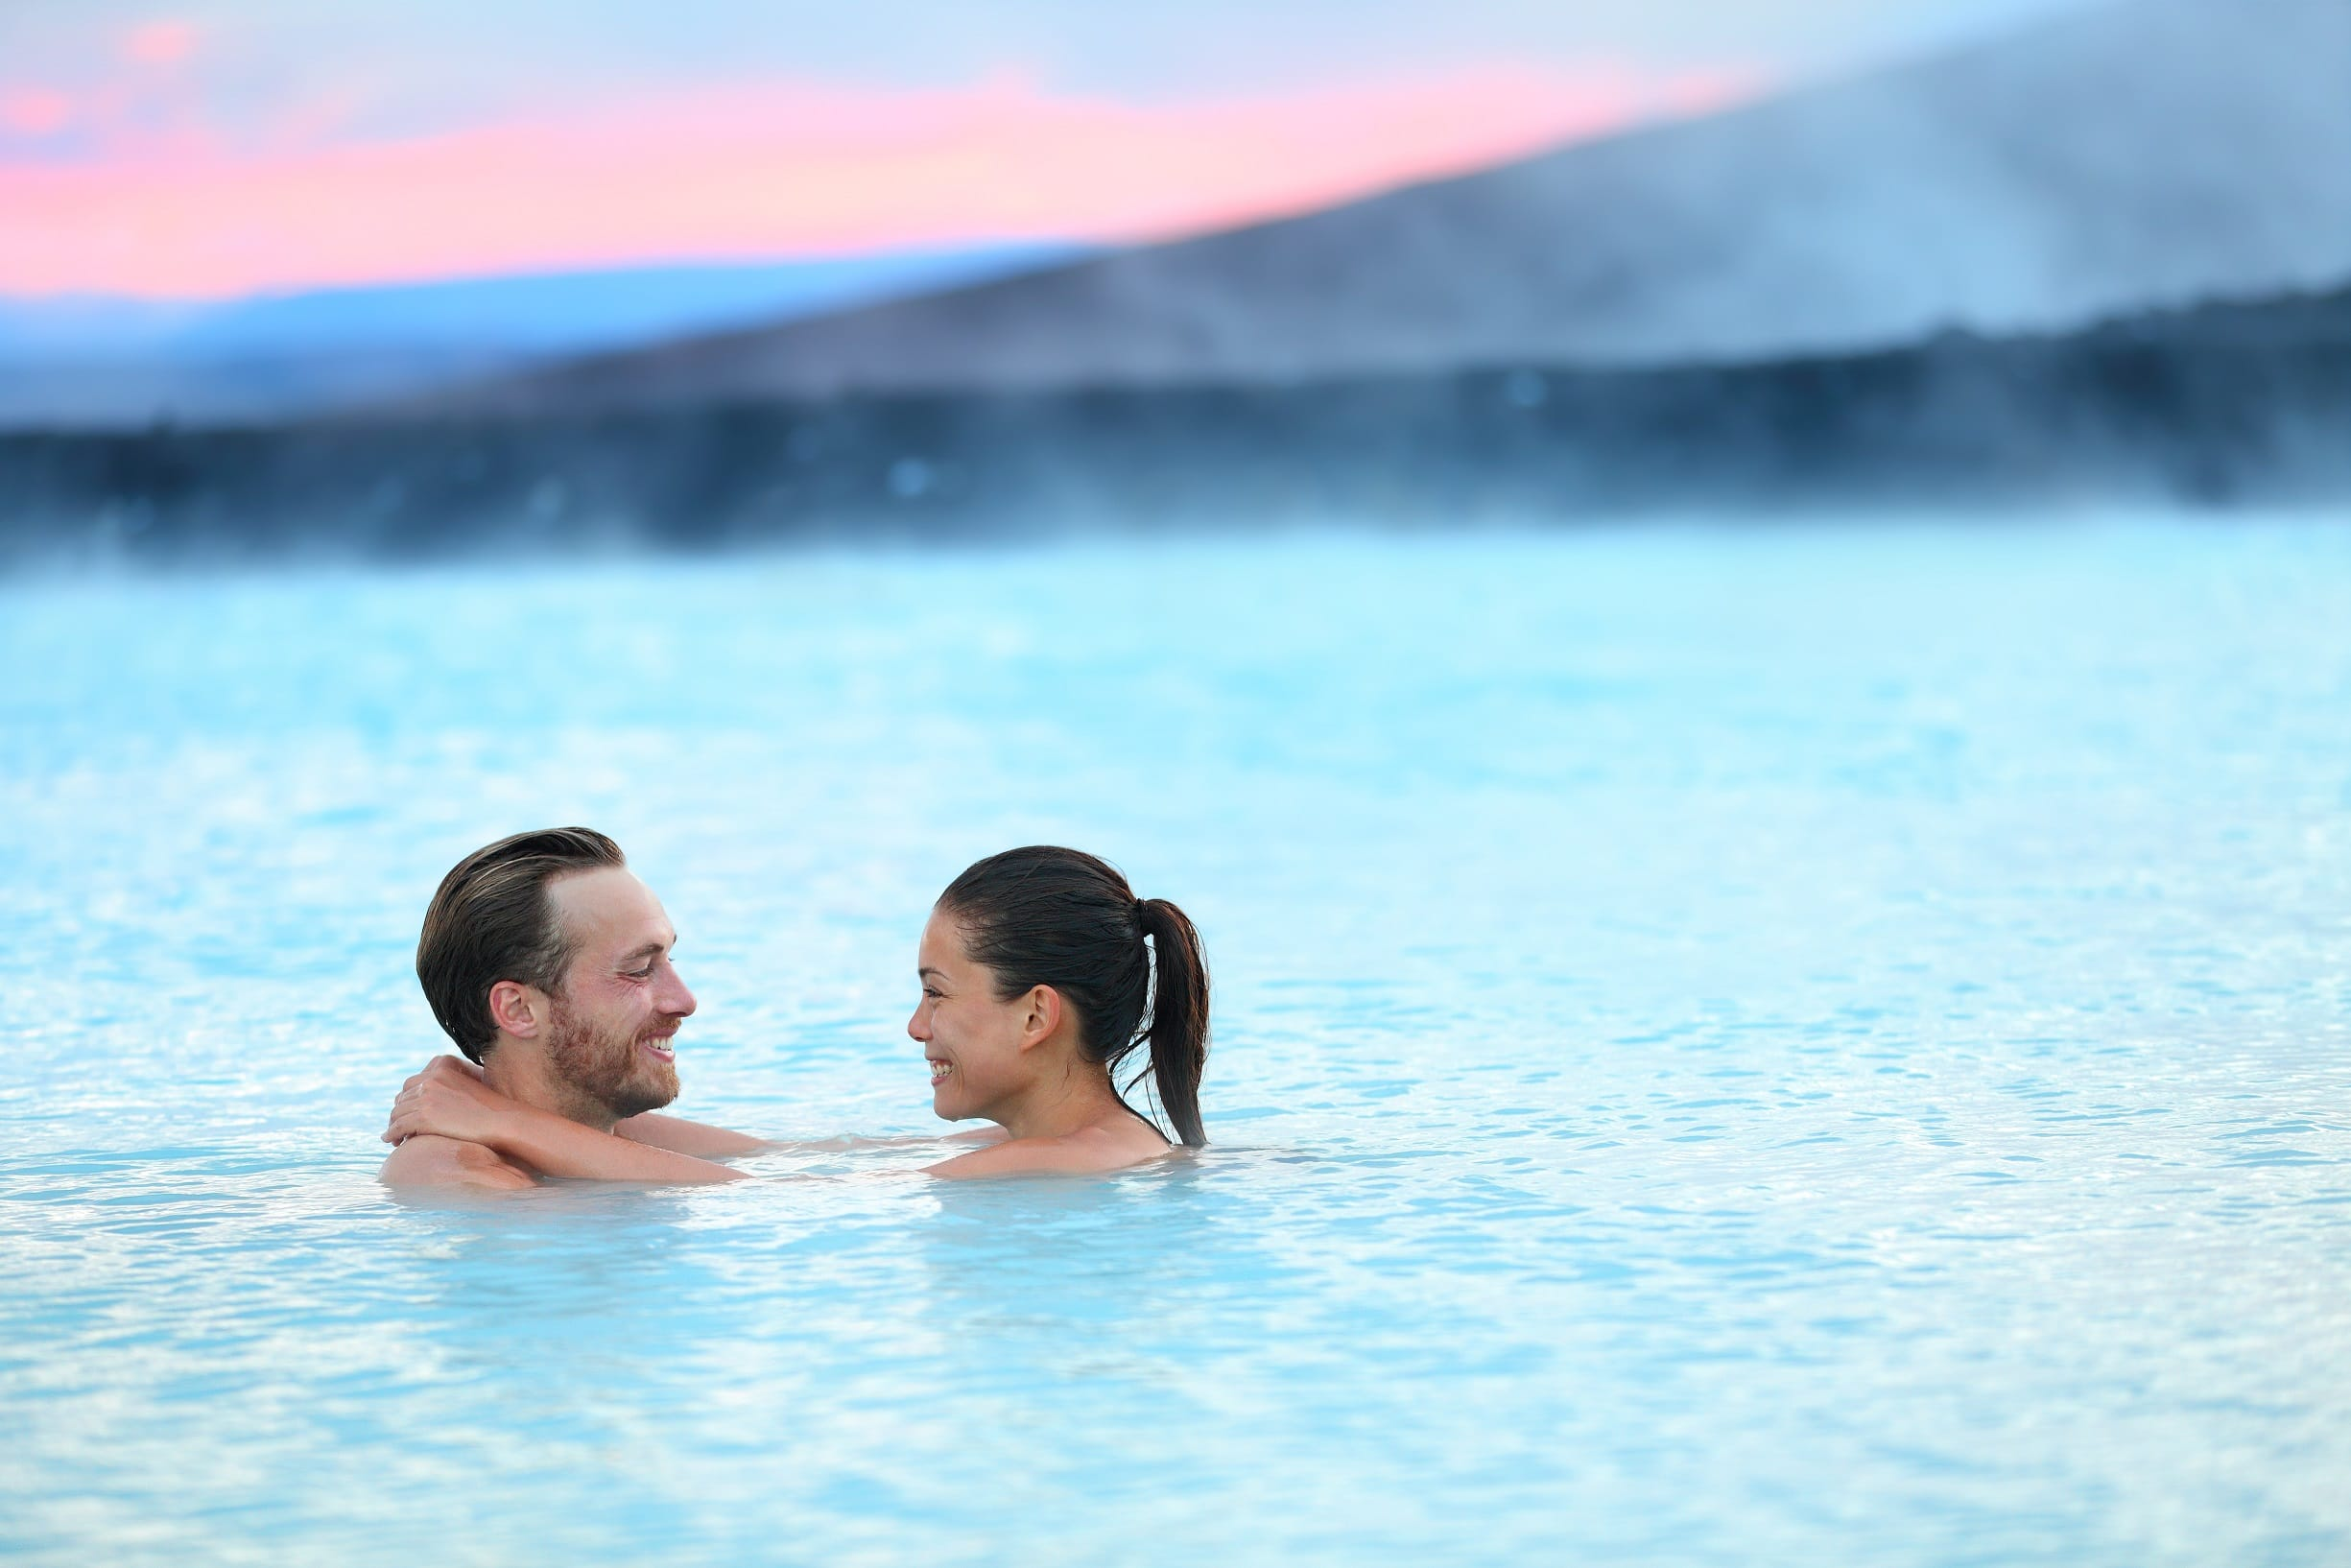 A couple on their honeymoon swim in the ocean. Photo: Shutterstock